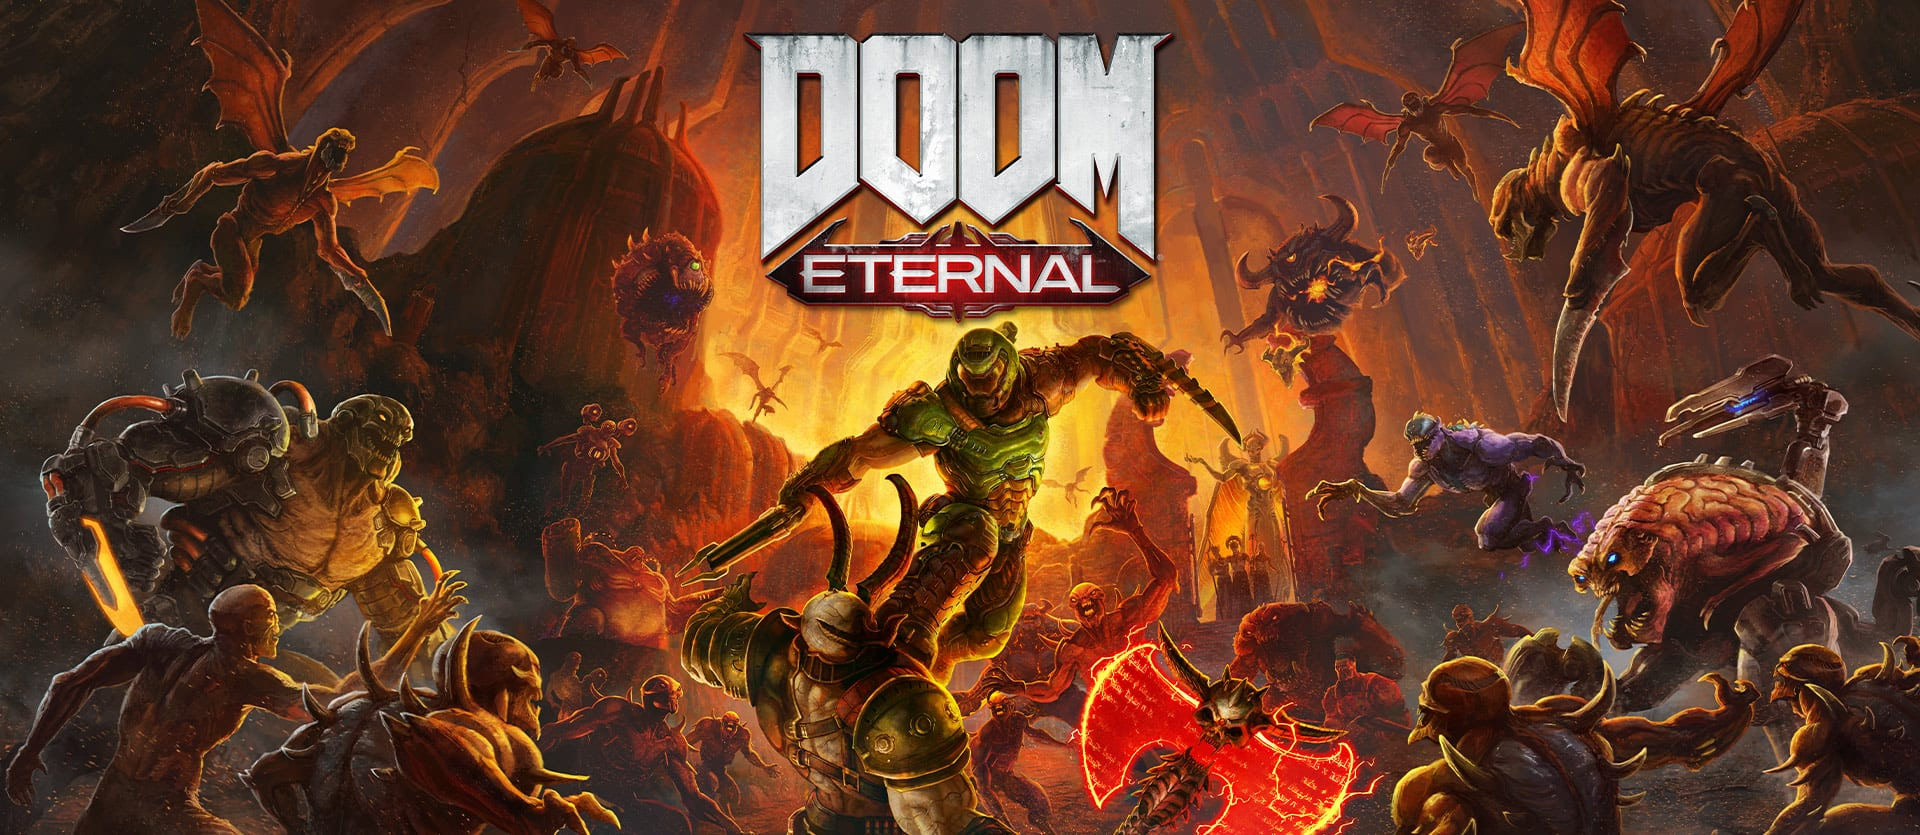 Doom Eternal Battlemode Console Update